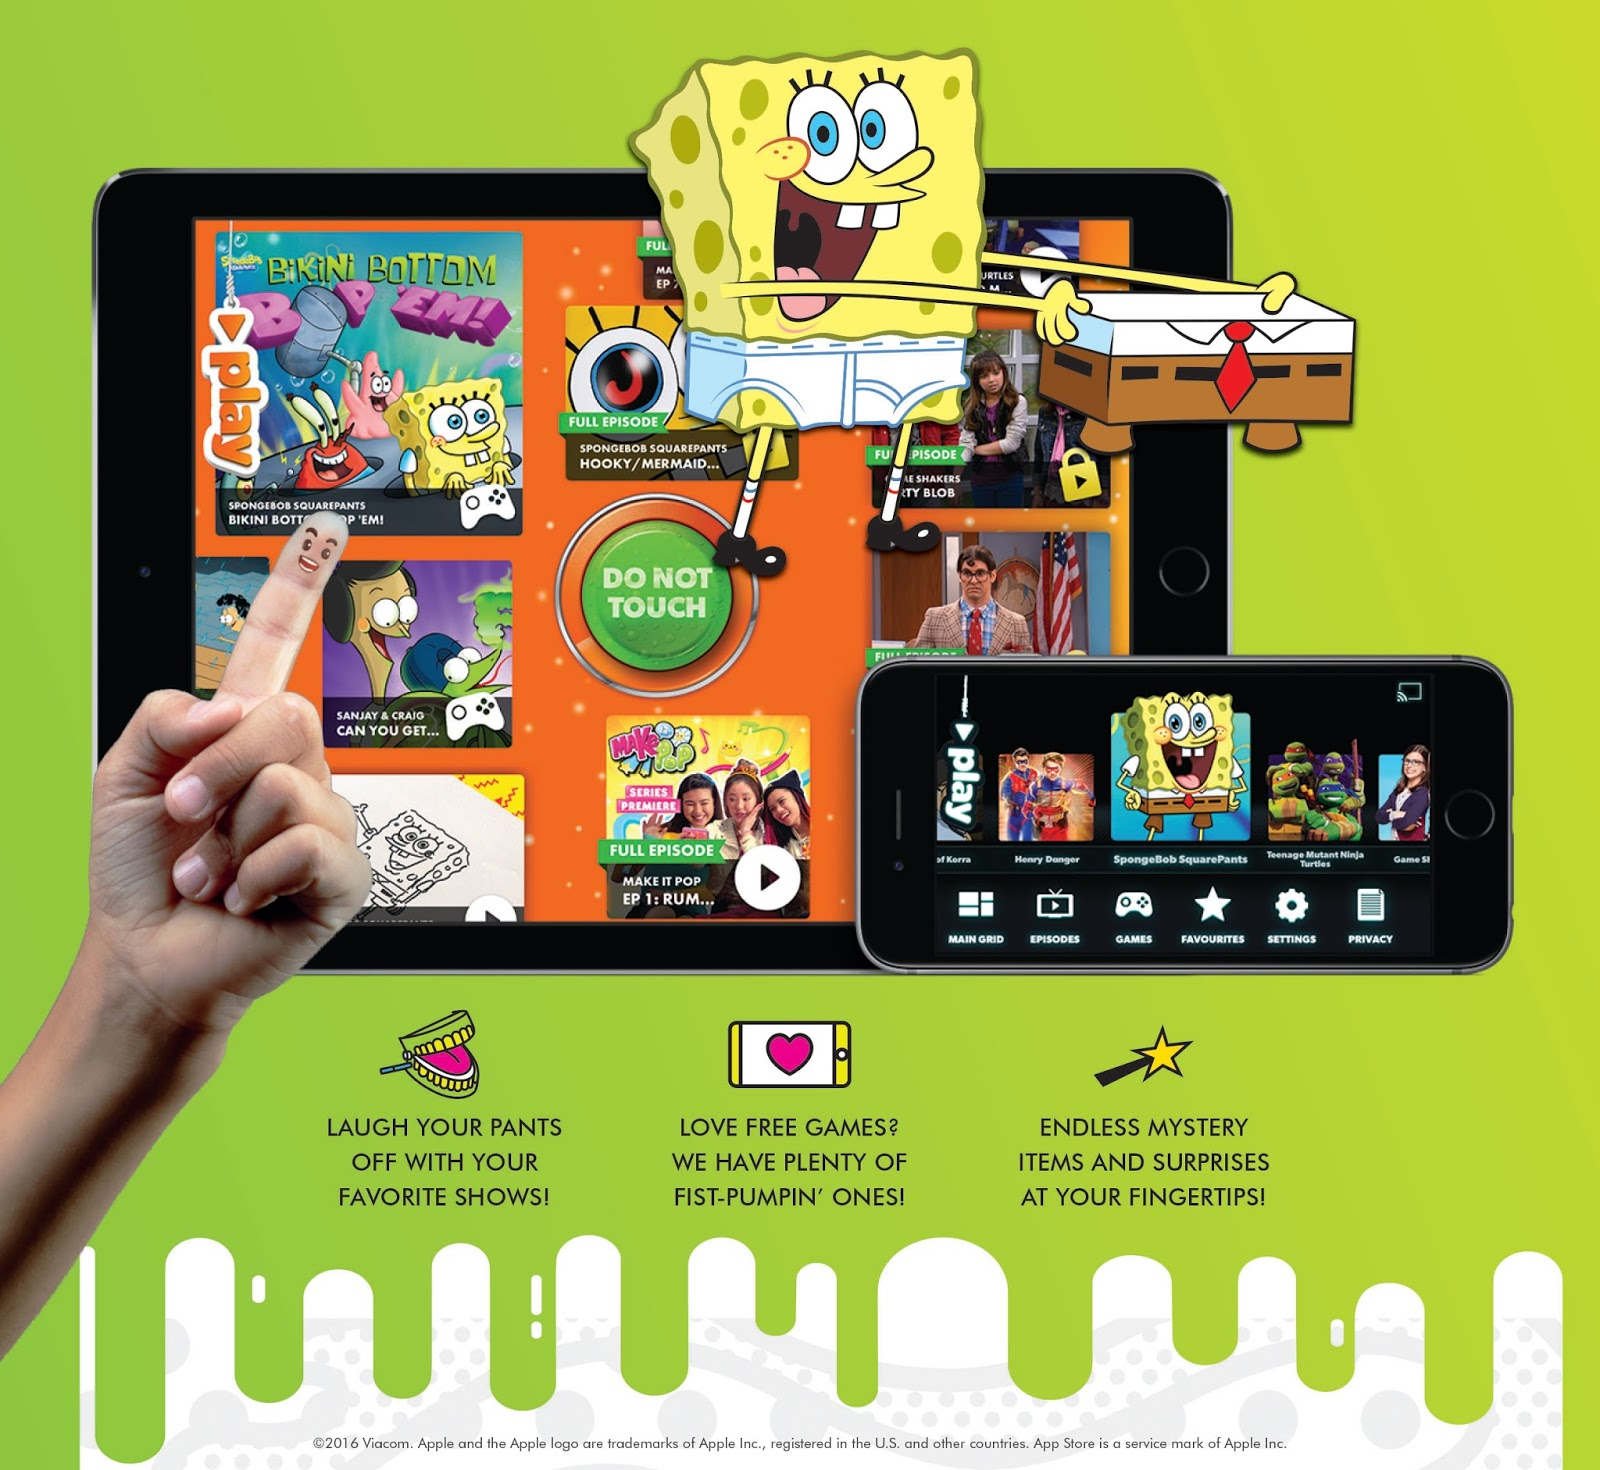 Nickalive viacom partners with telkomsel to launch Play app